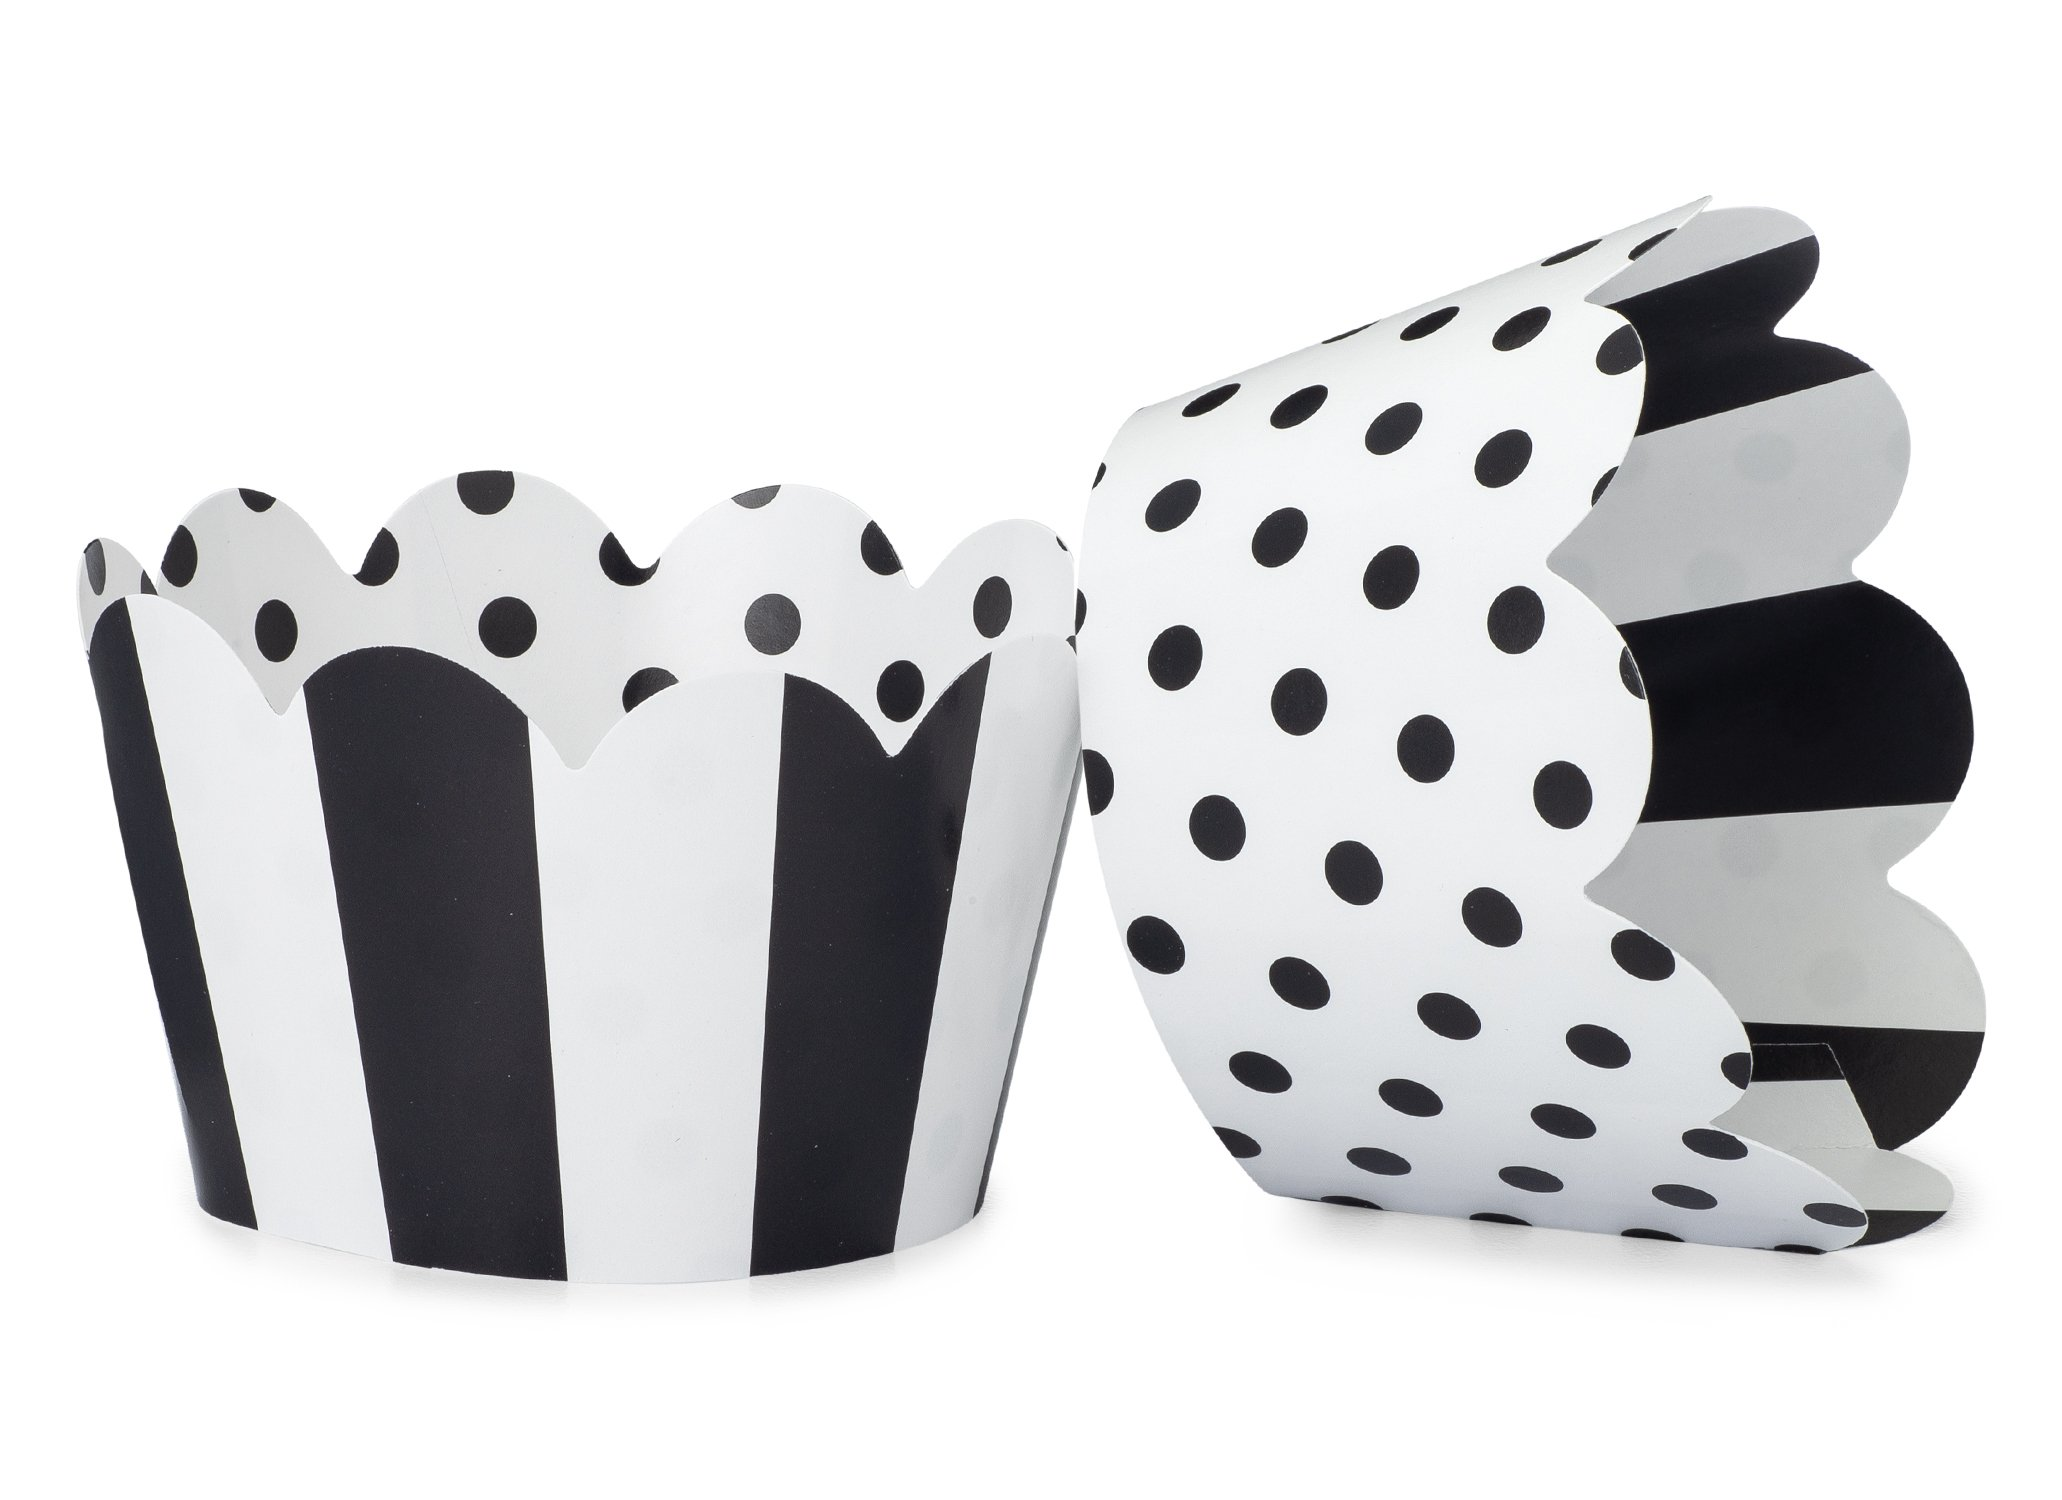 Black and White Cupcake Wrappers for Weddings, Graduations, Kids and Adult Birthday Parties, Baby Showers. Set of 24 Reversible Cup Cake Holder Wraps with Polka Dots and Stripes. Black, White by Toula Products (Image #1)